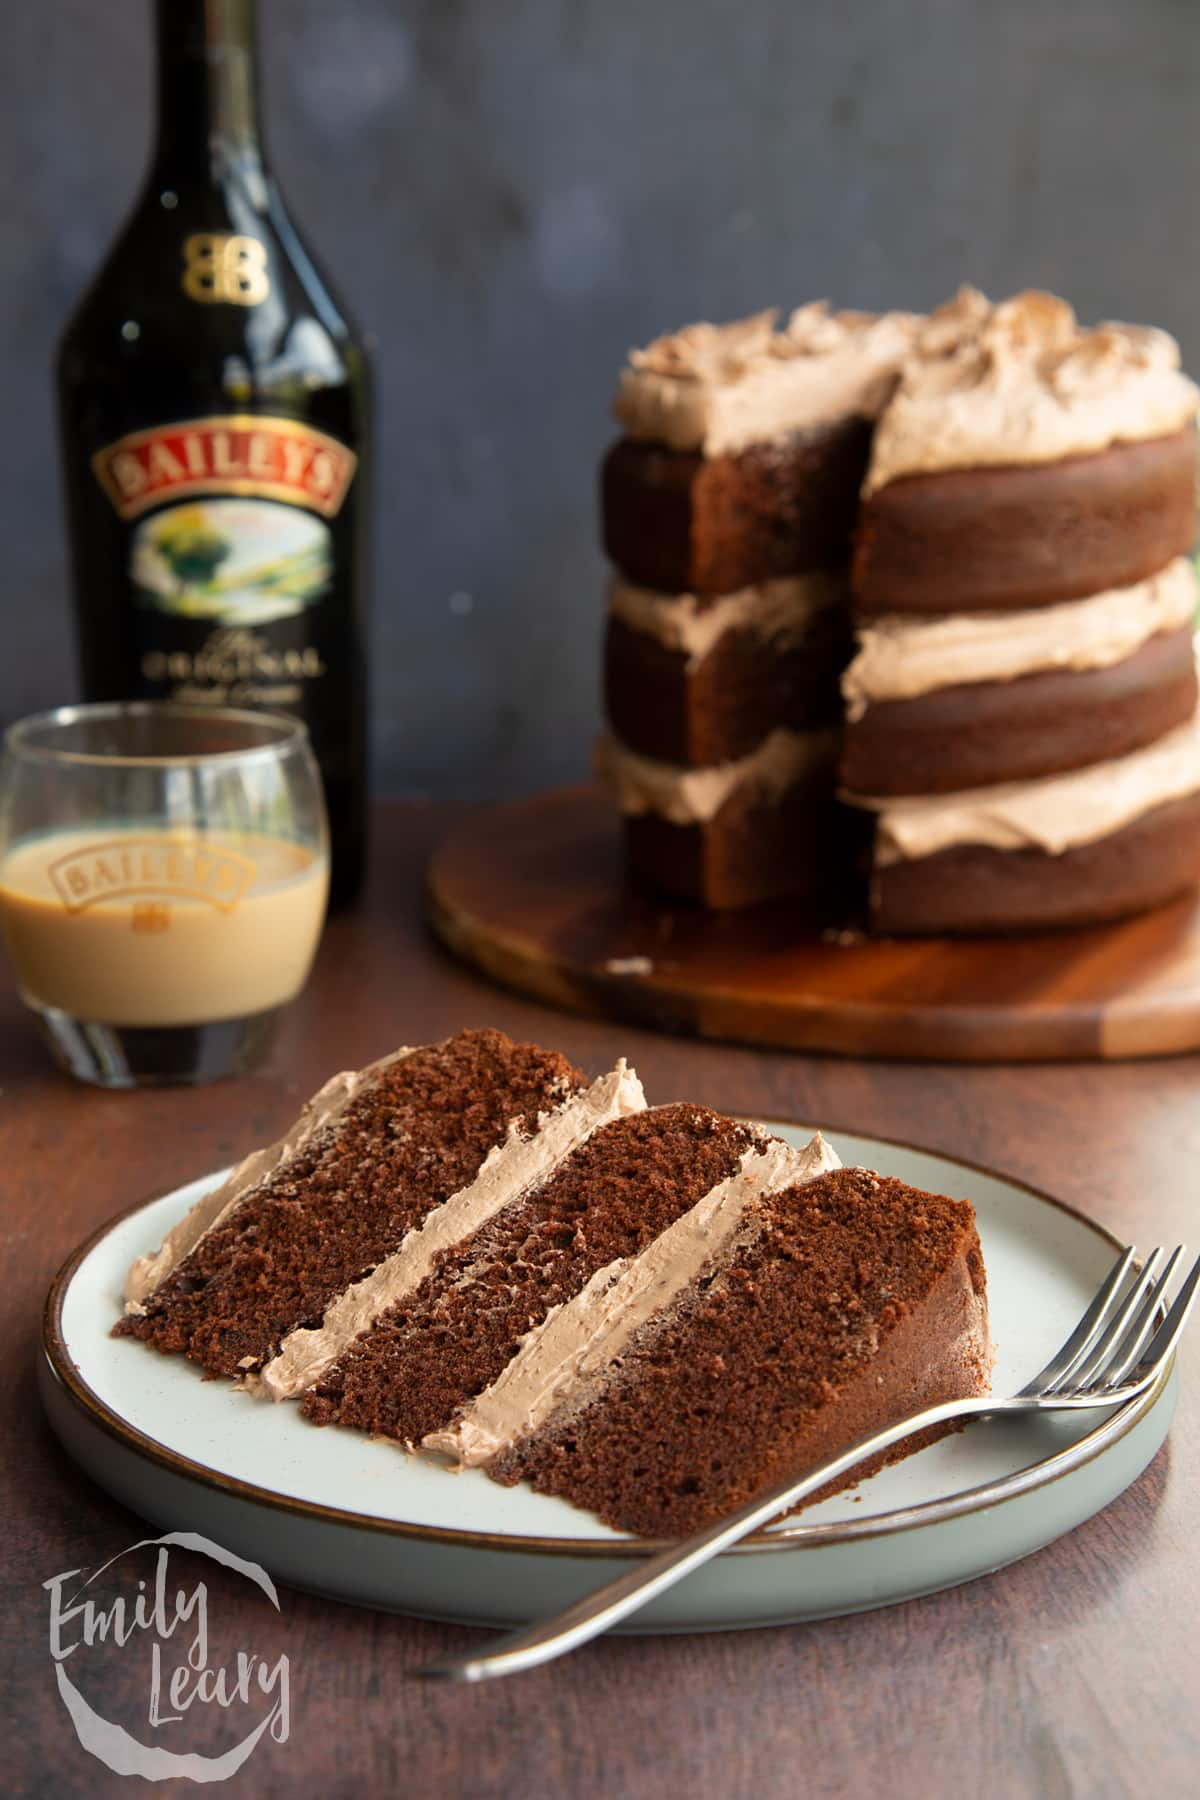 Slice of chocolate Baileys cake with Baileys buttercream frosting on a white plate with a fork.